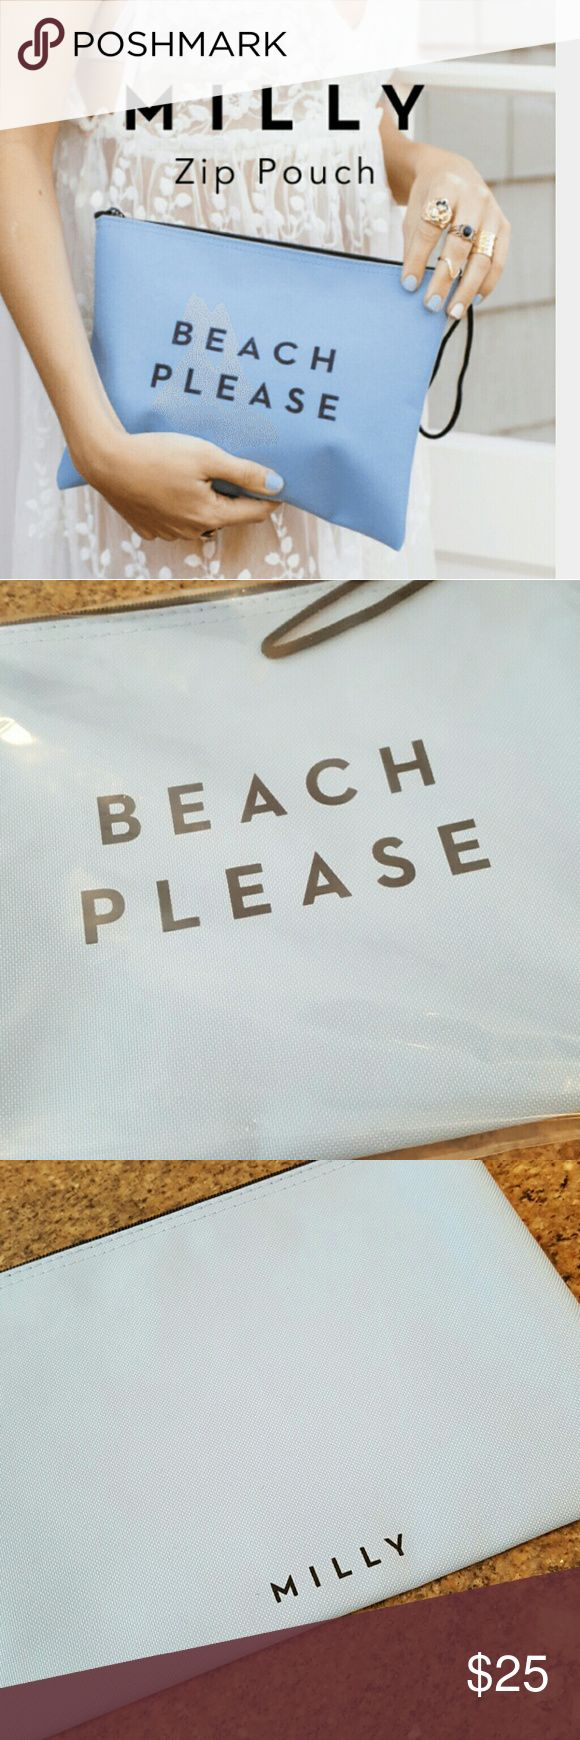 """Milly Beach Please Pouch Exclusively for Fab Fit Fun, durable canvas is water resistant with rubberized, interior. Use it as a wet bikini bag or casual clutch. Measures 10.25"""" ? 8"""" and has a handy wrist strap. Milly Bags Clutches & Wristlets"""